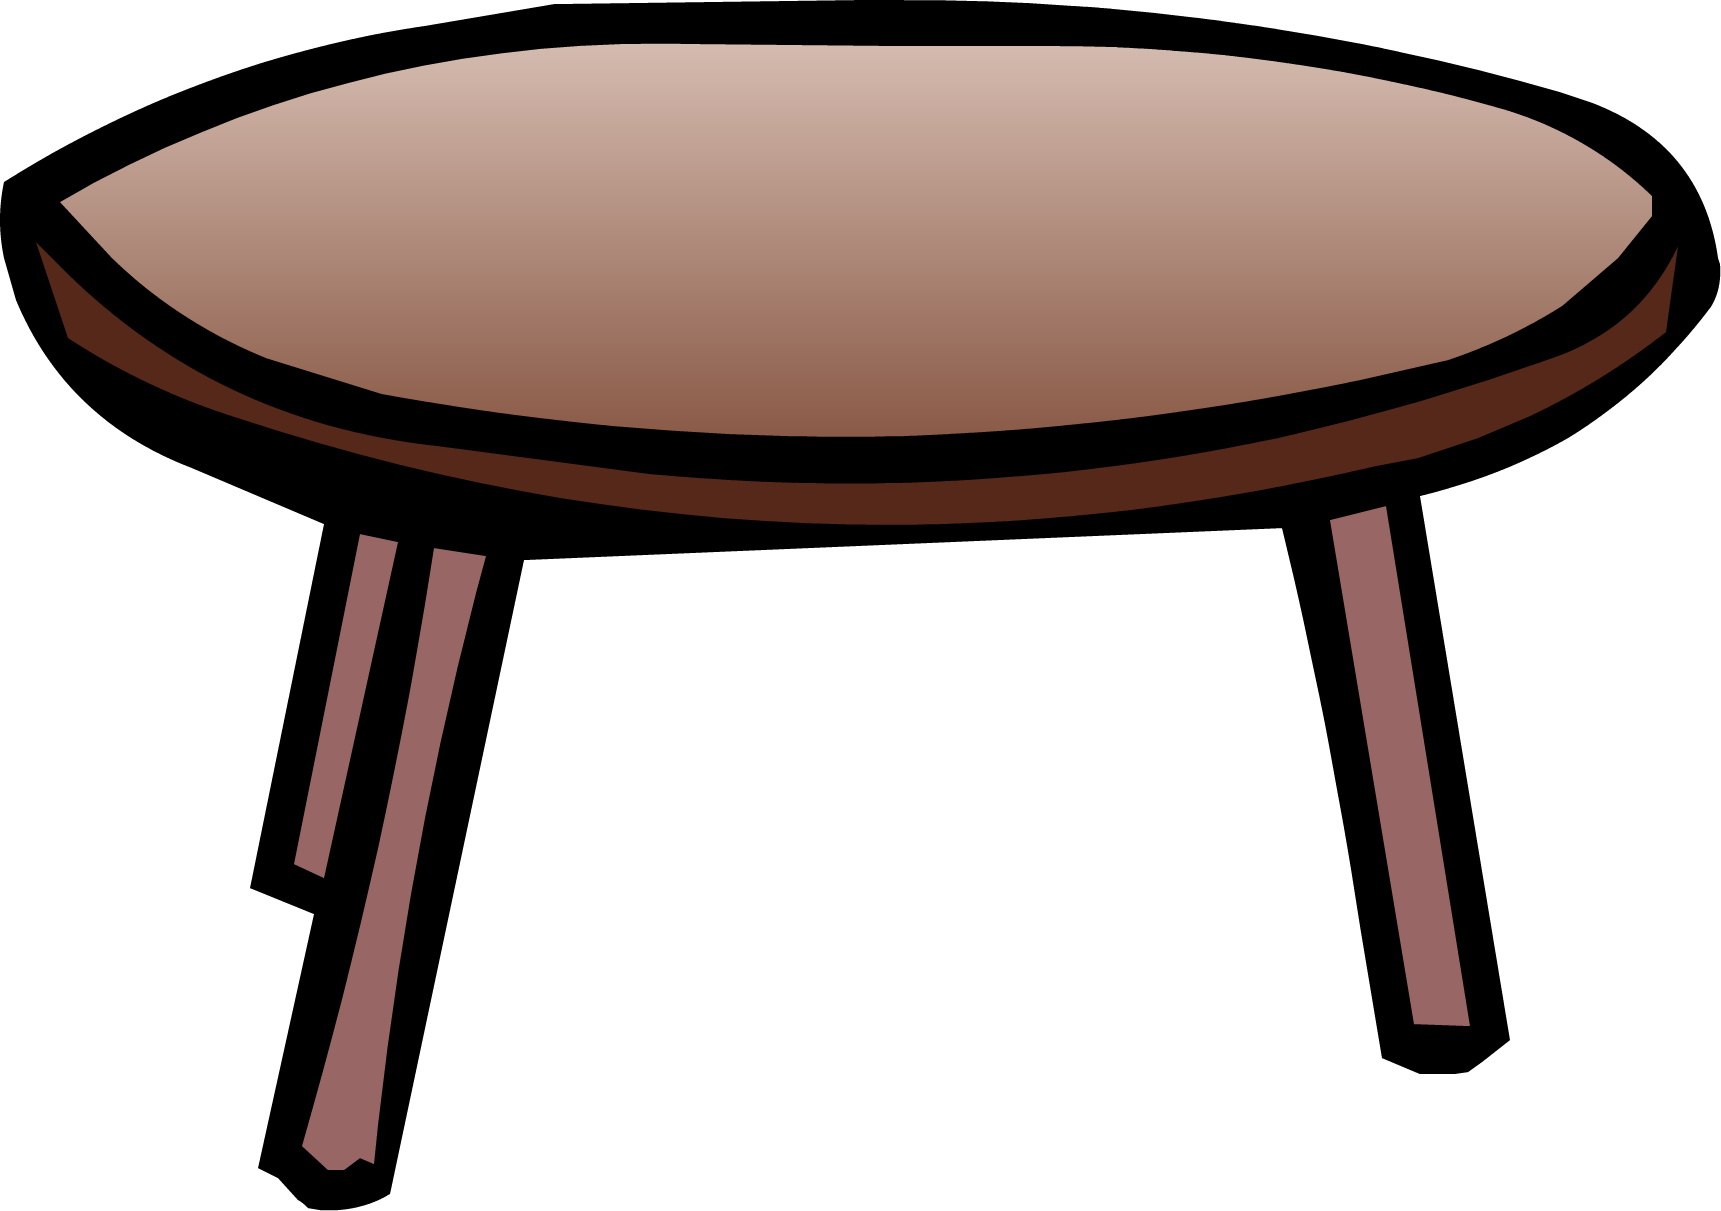 Image coffee png club. Furniture clipart dinning table